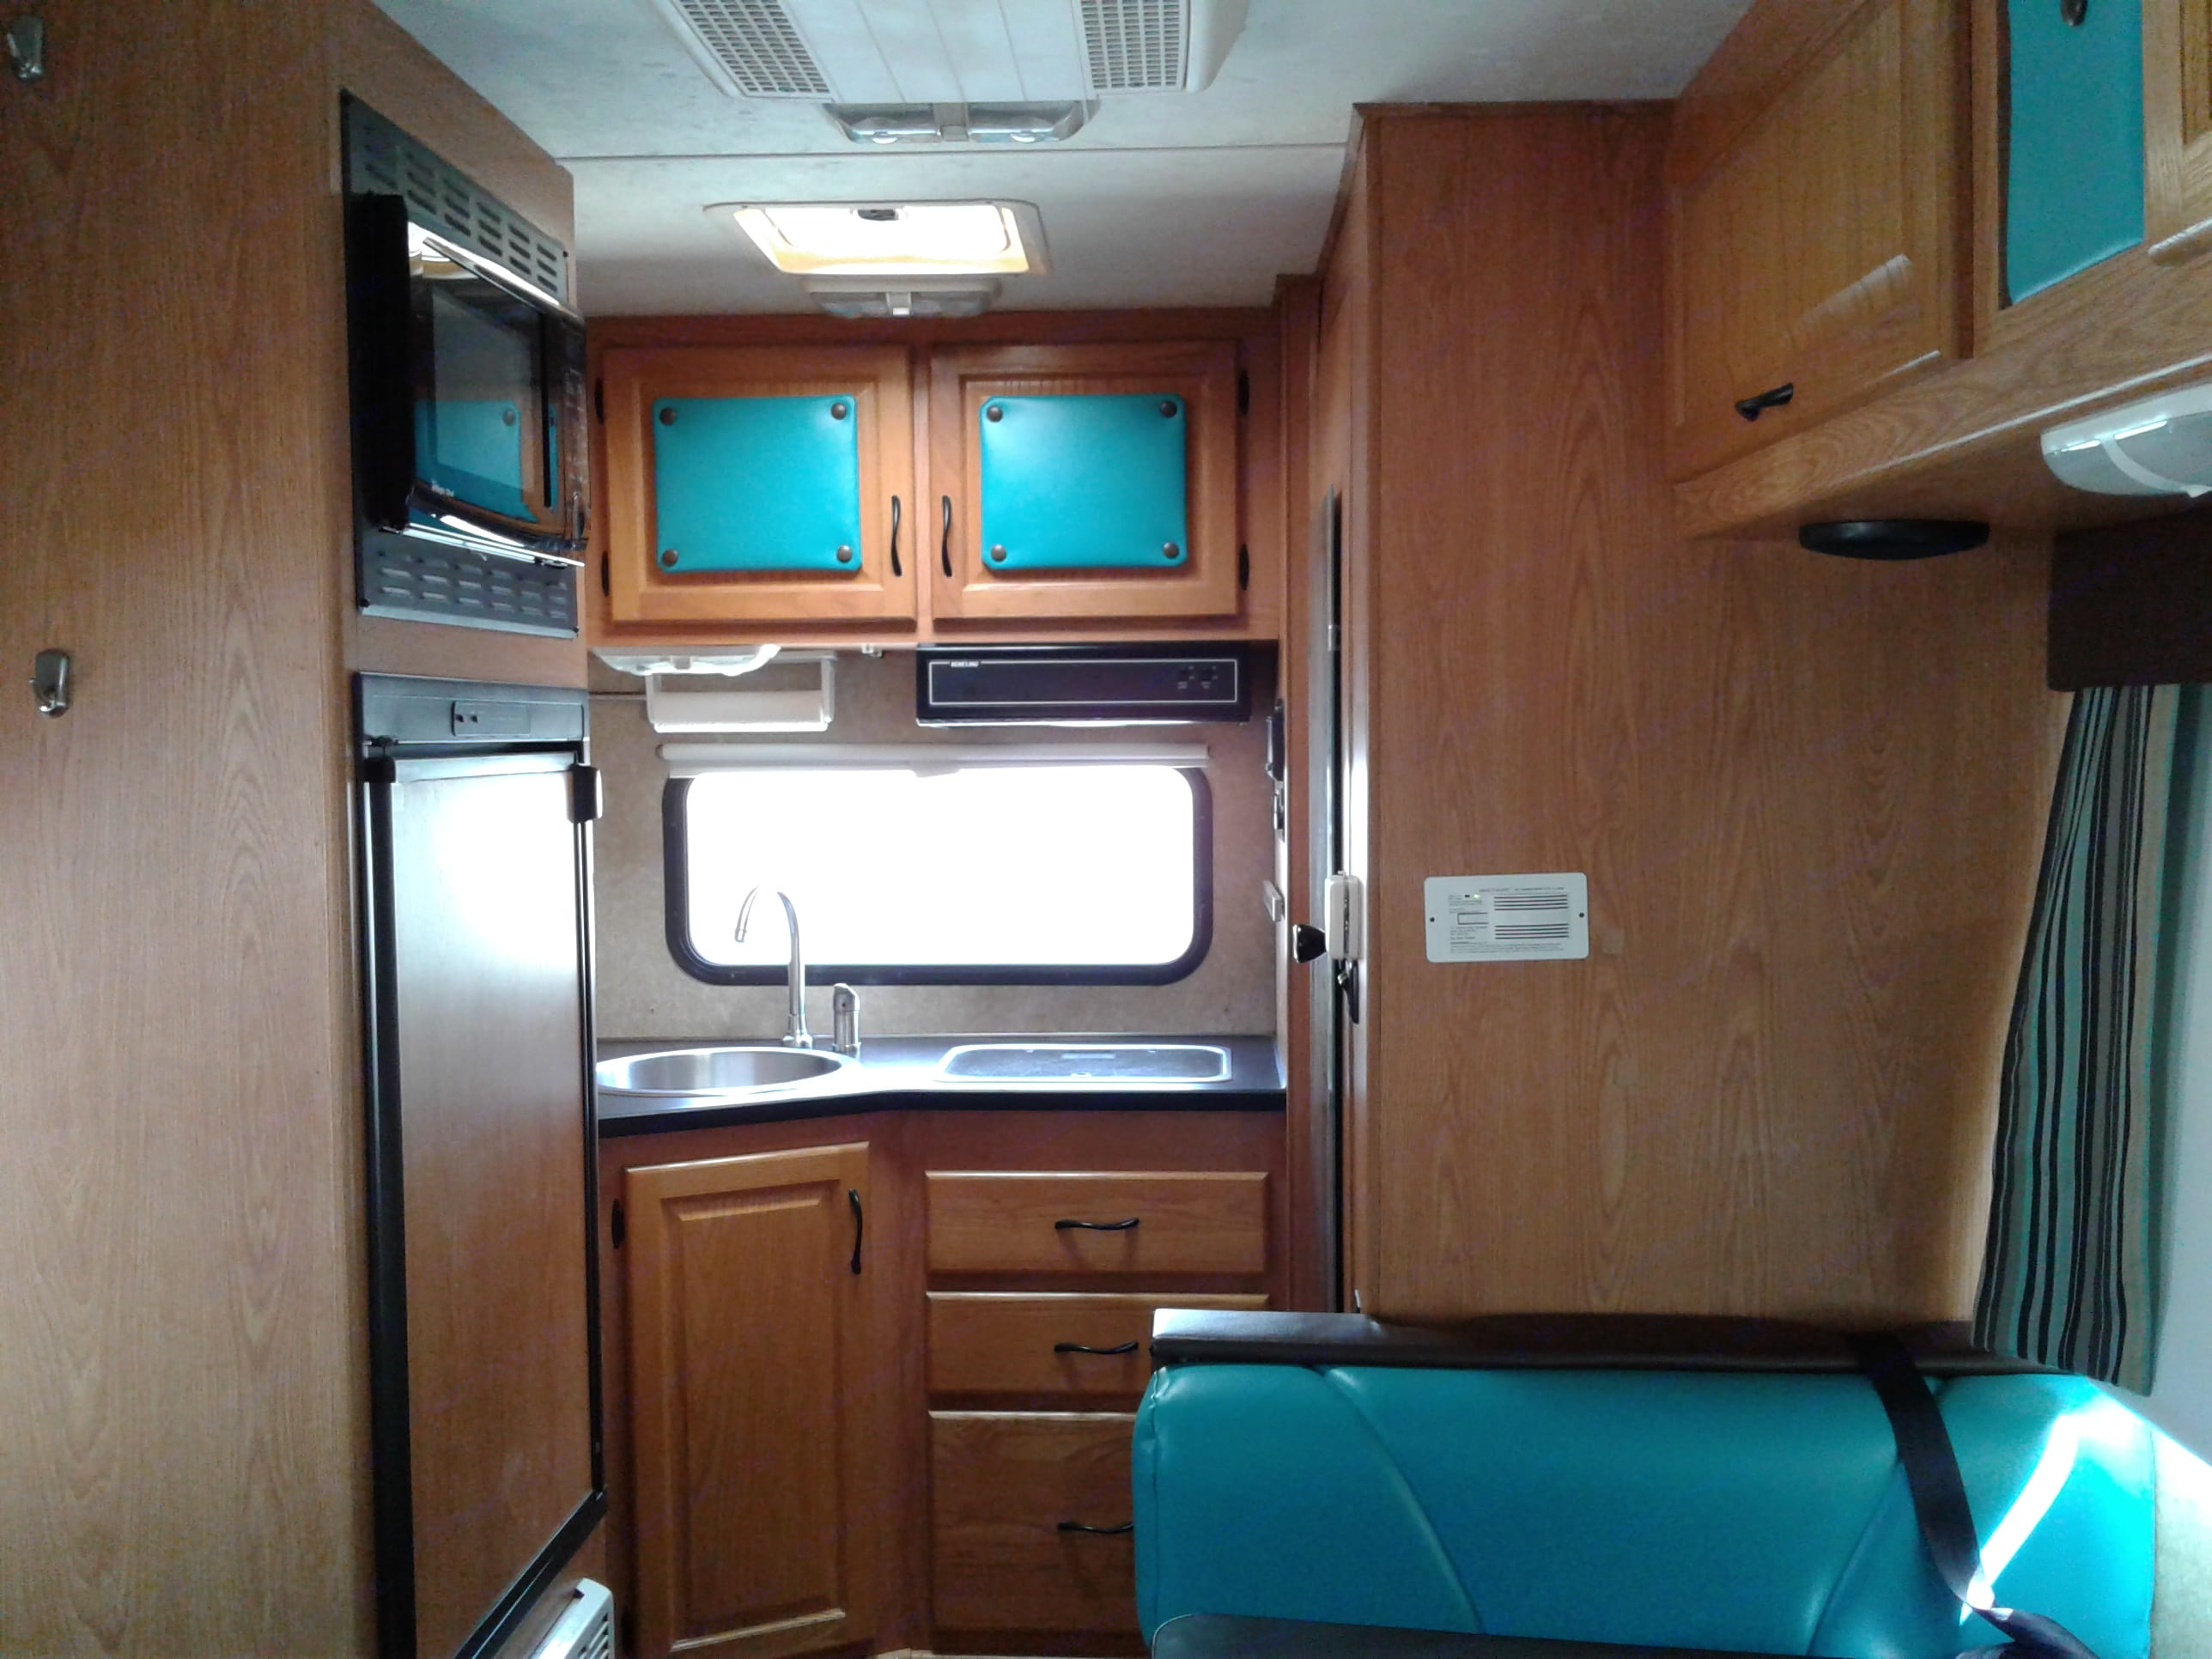 The kitchen has a 2 burner stove, and a sink. Cabinets above, and drawers under.. Thor Motor Coach Four Winds Majestic 2010